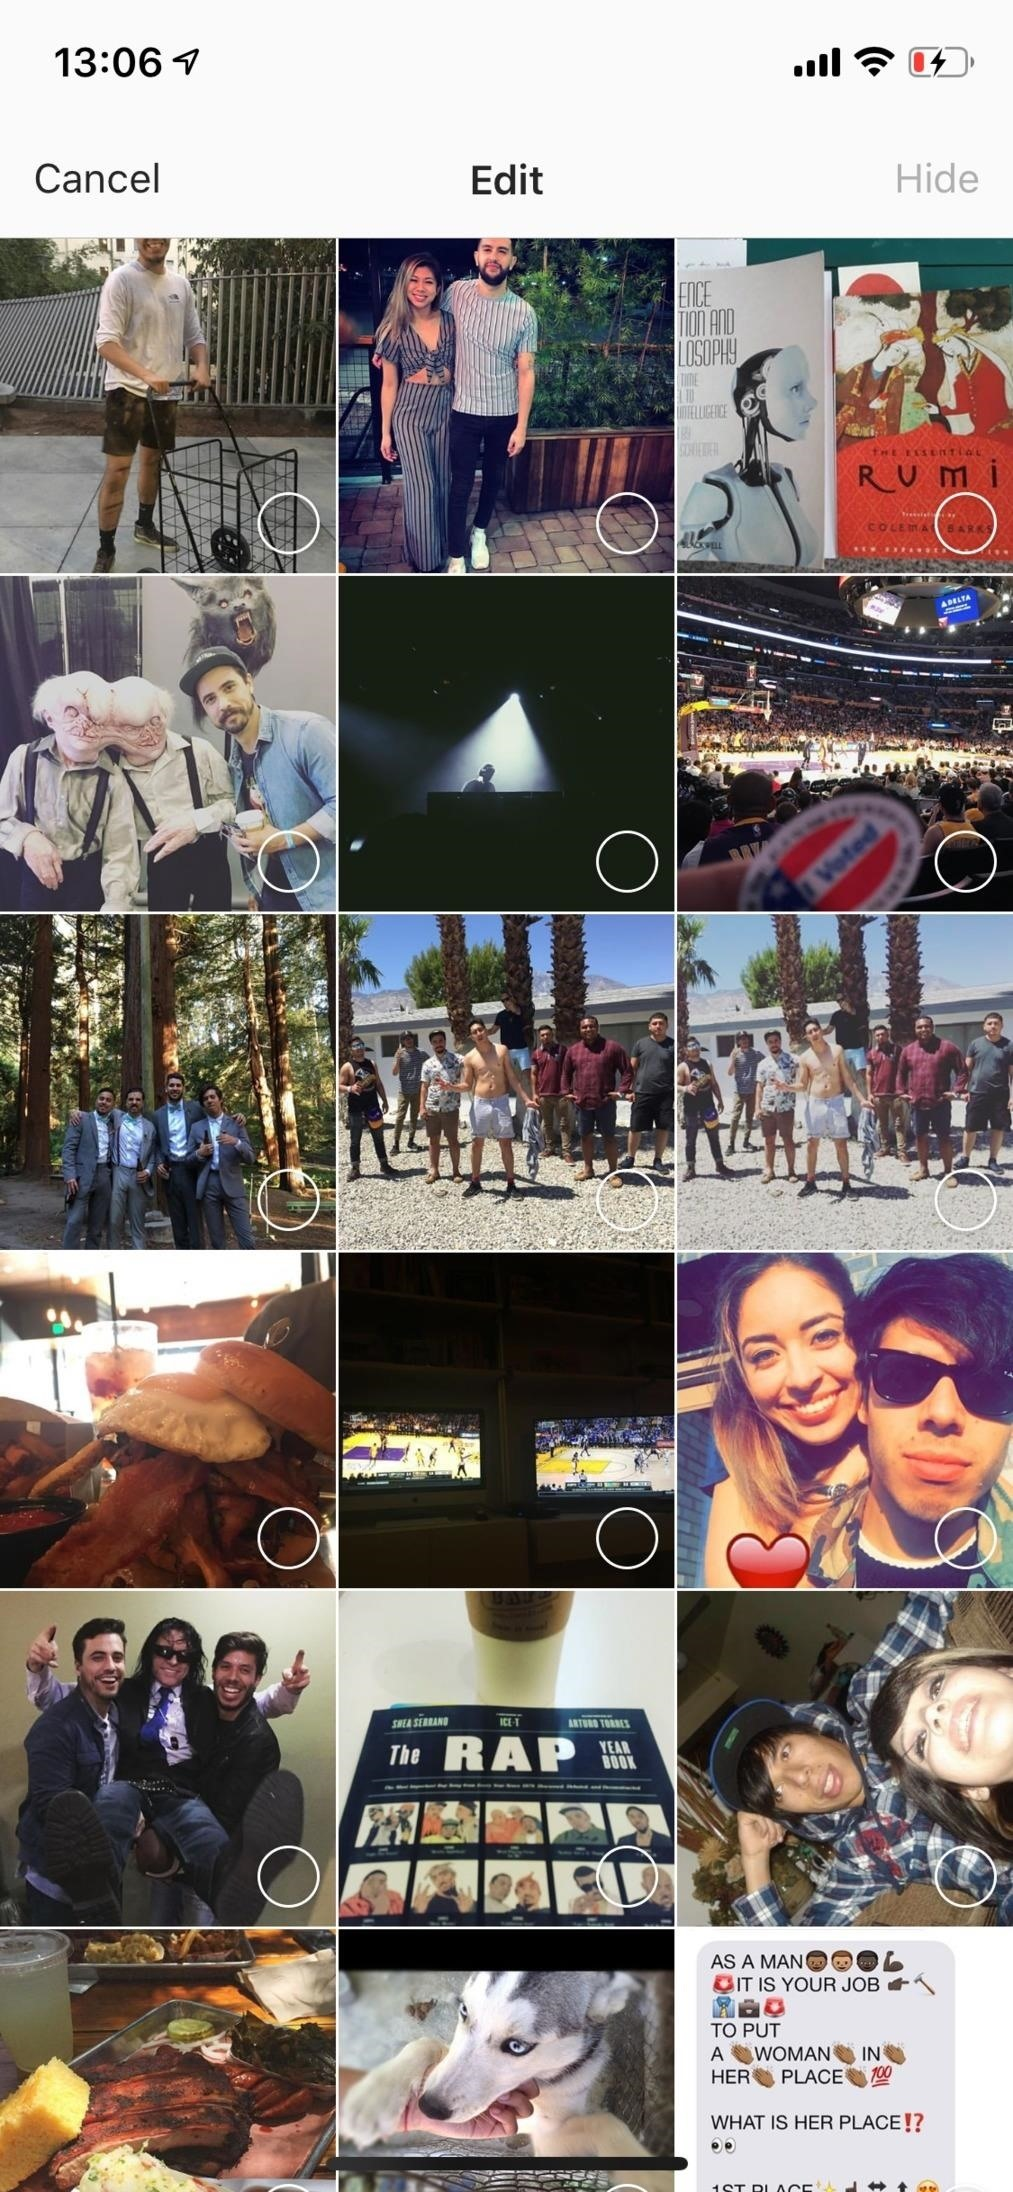 16 Ways to Improve Your Privacy & Security on Instagram